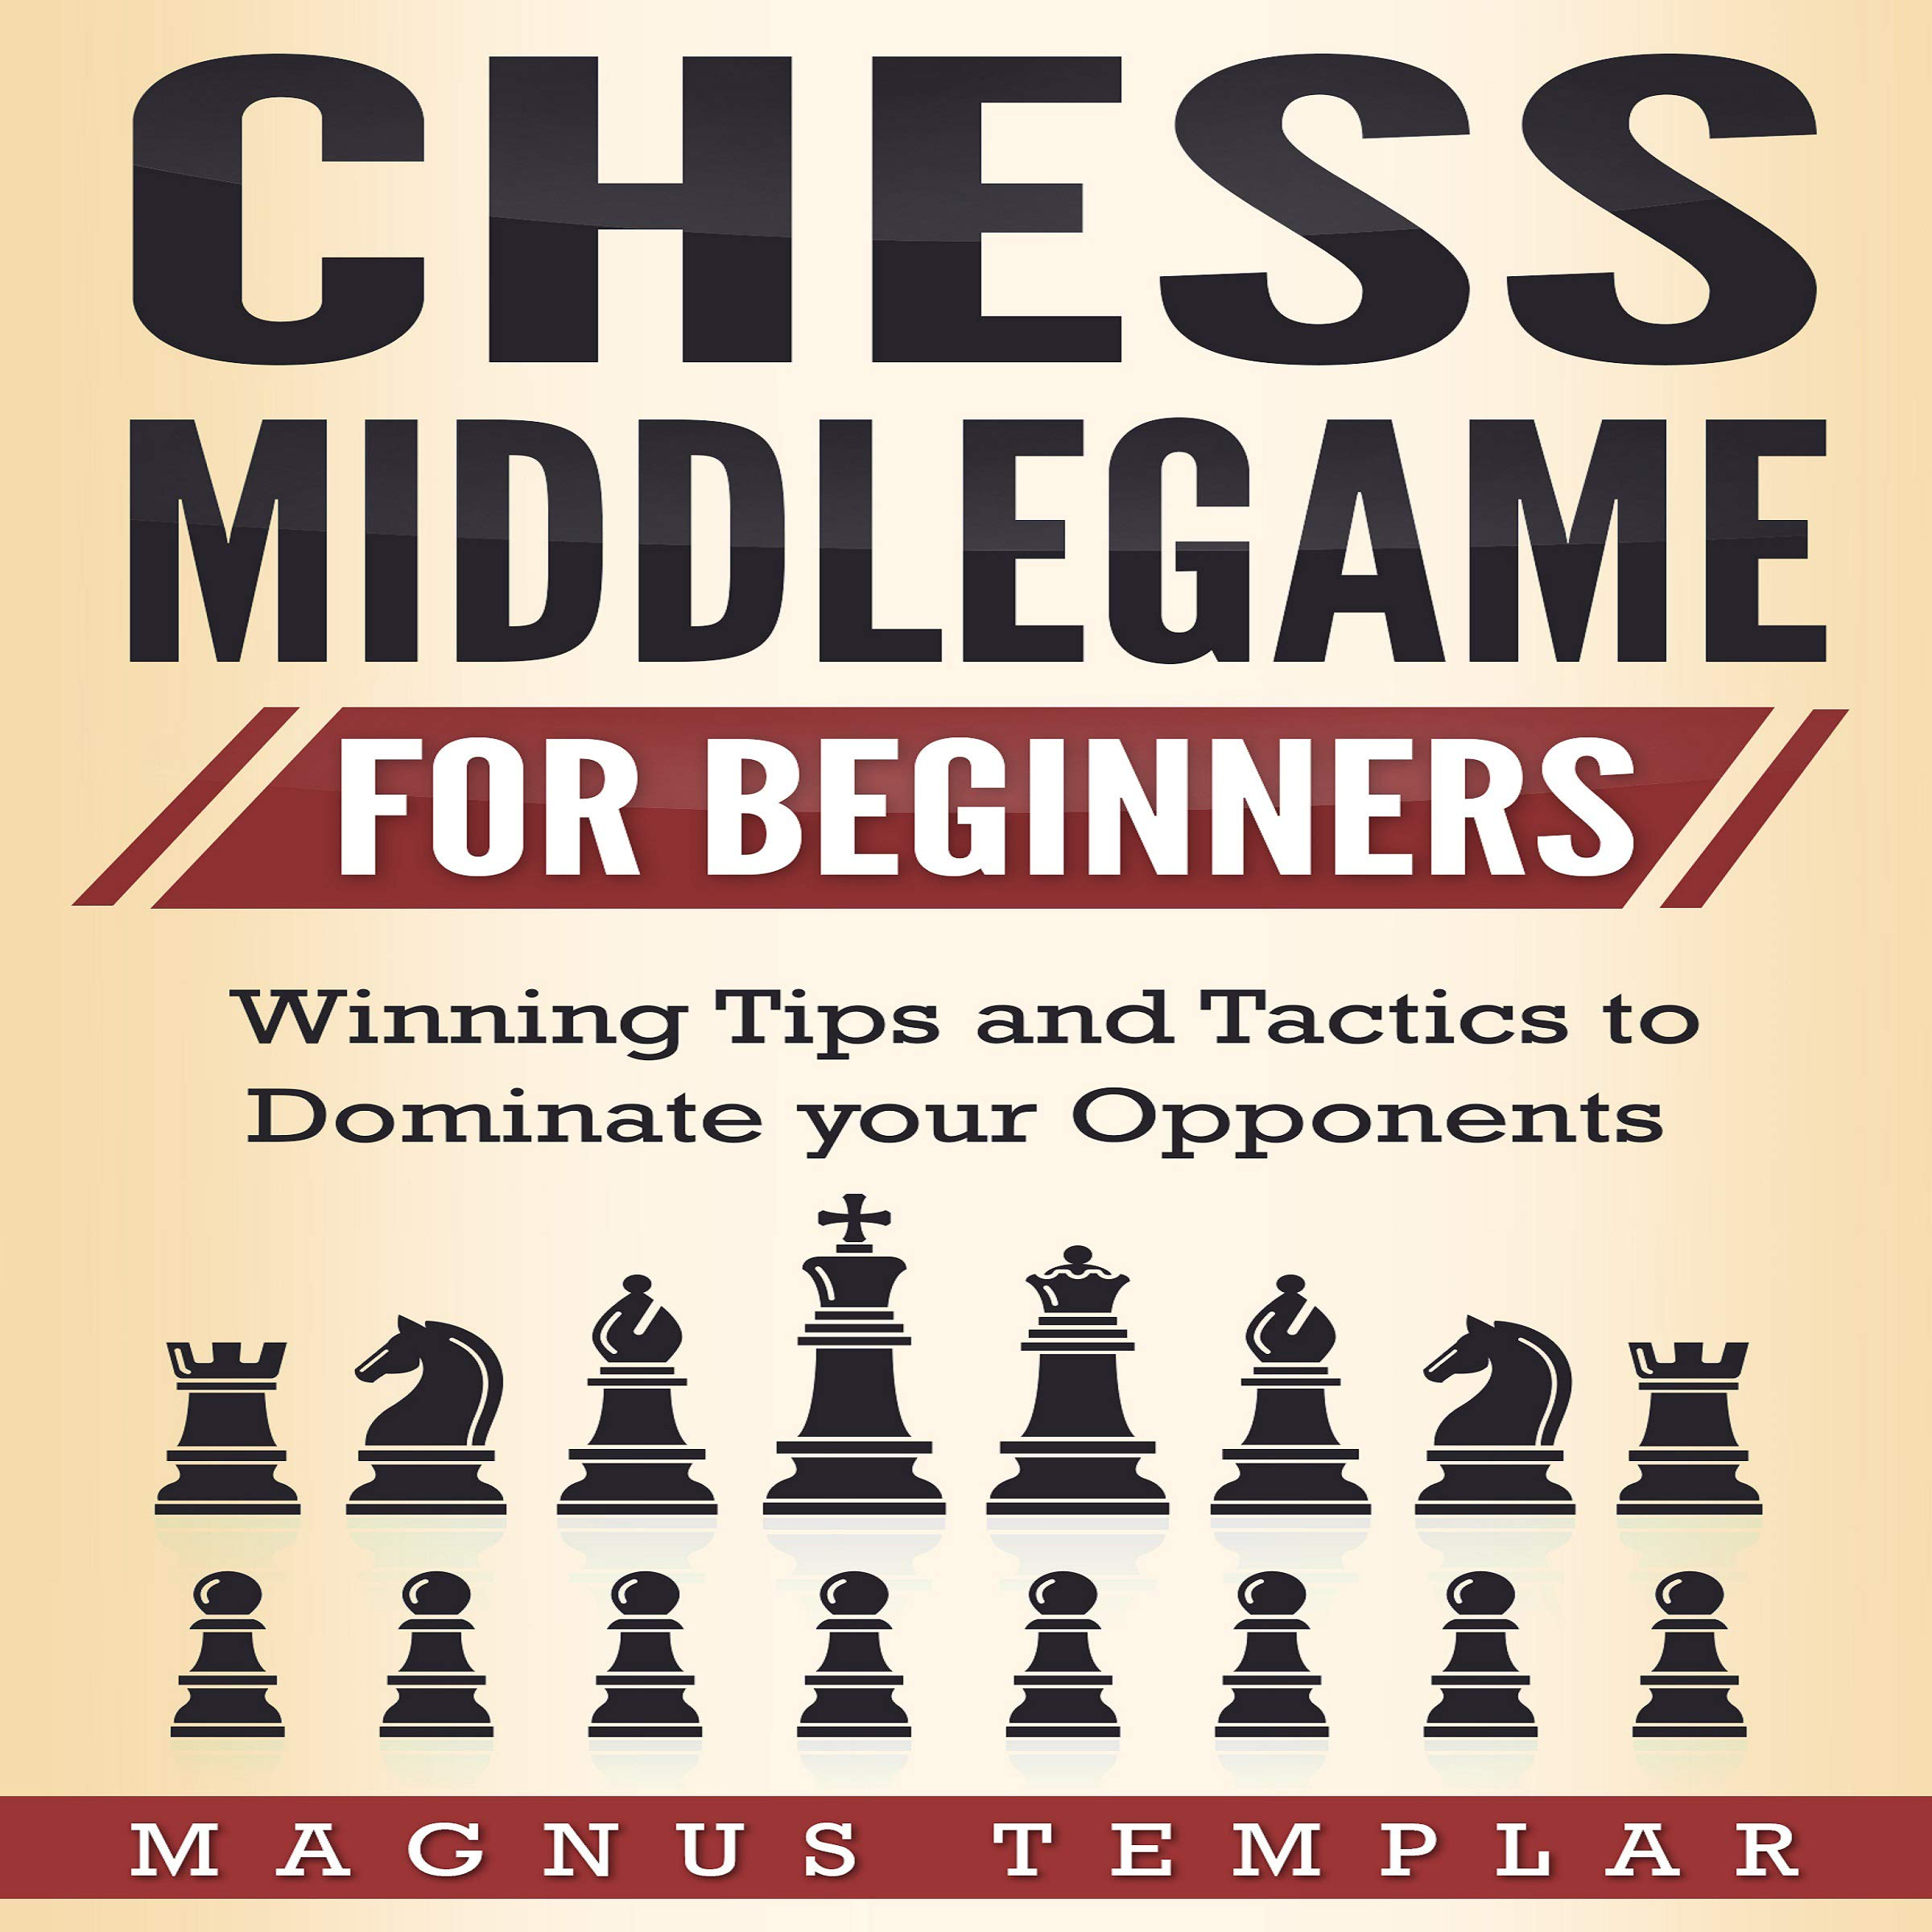 Chess For Beginners  Winning Tips And Tactics To Dominate Your Opponents  Chess Middlegame Volume 4